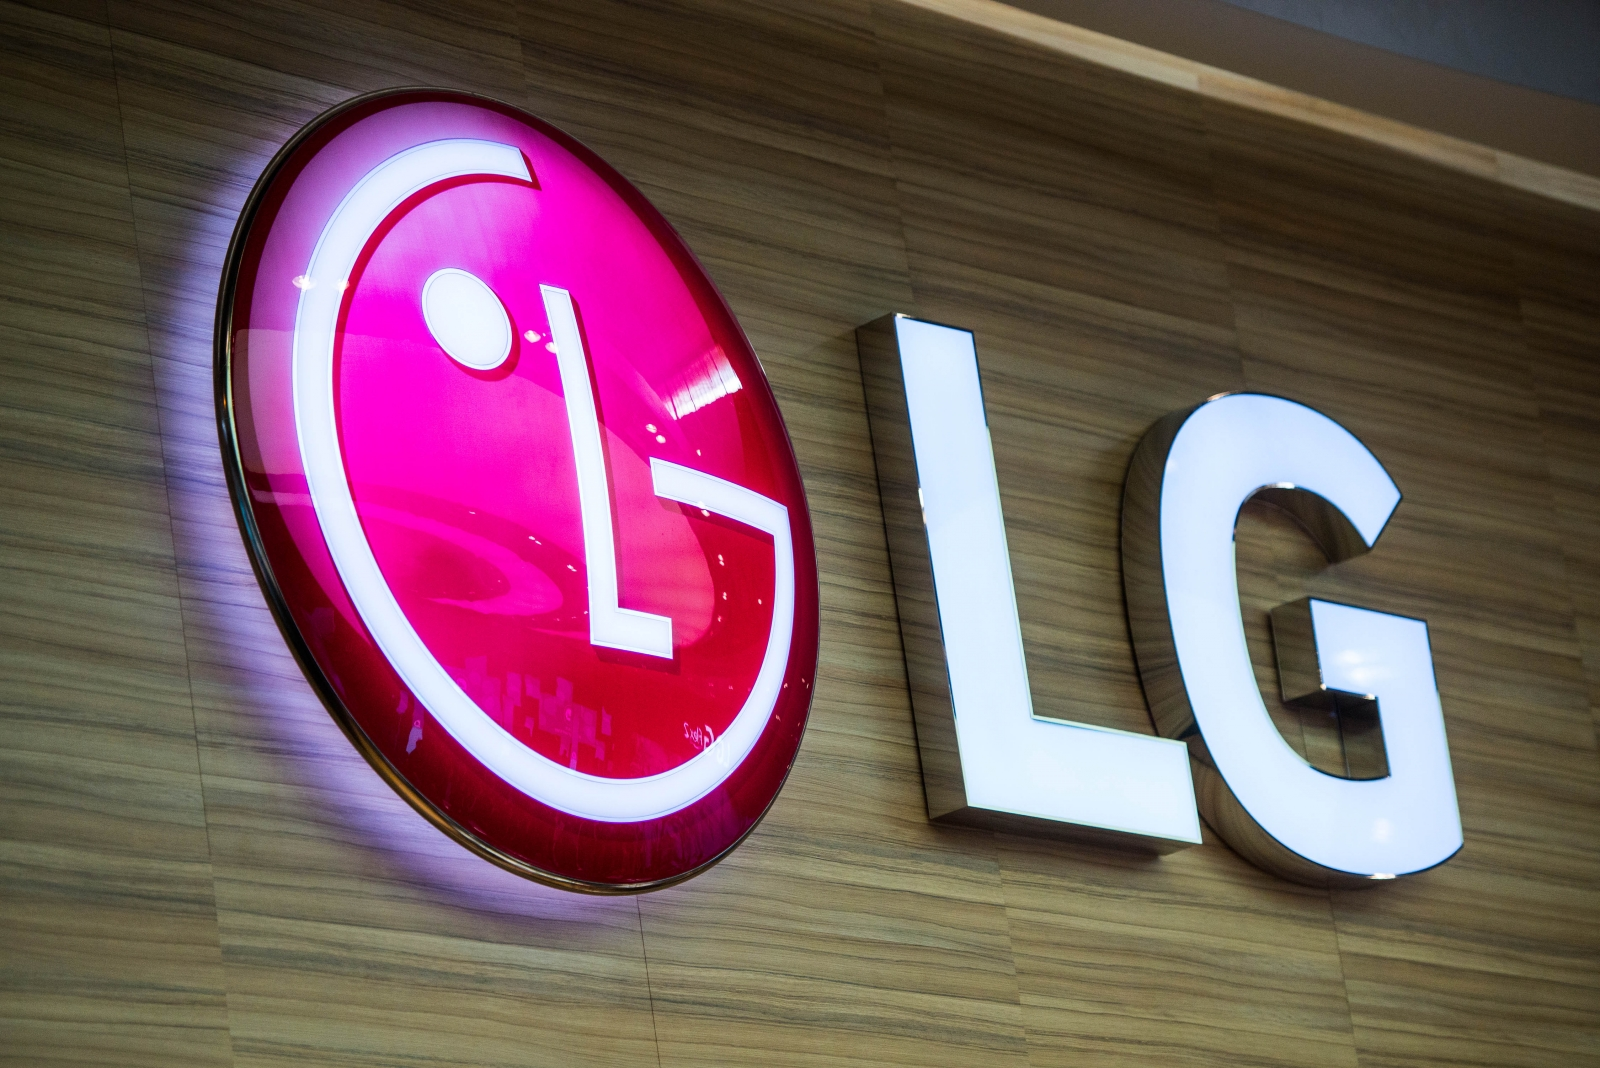 LG G6 to use heat pipes